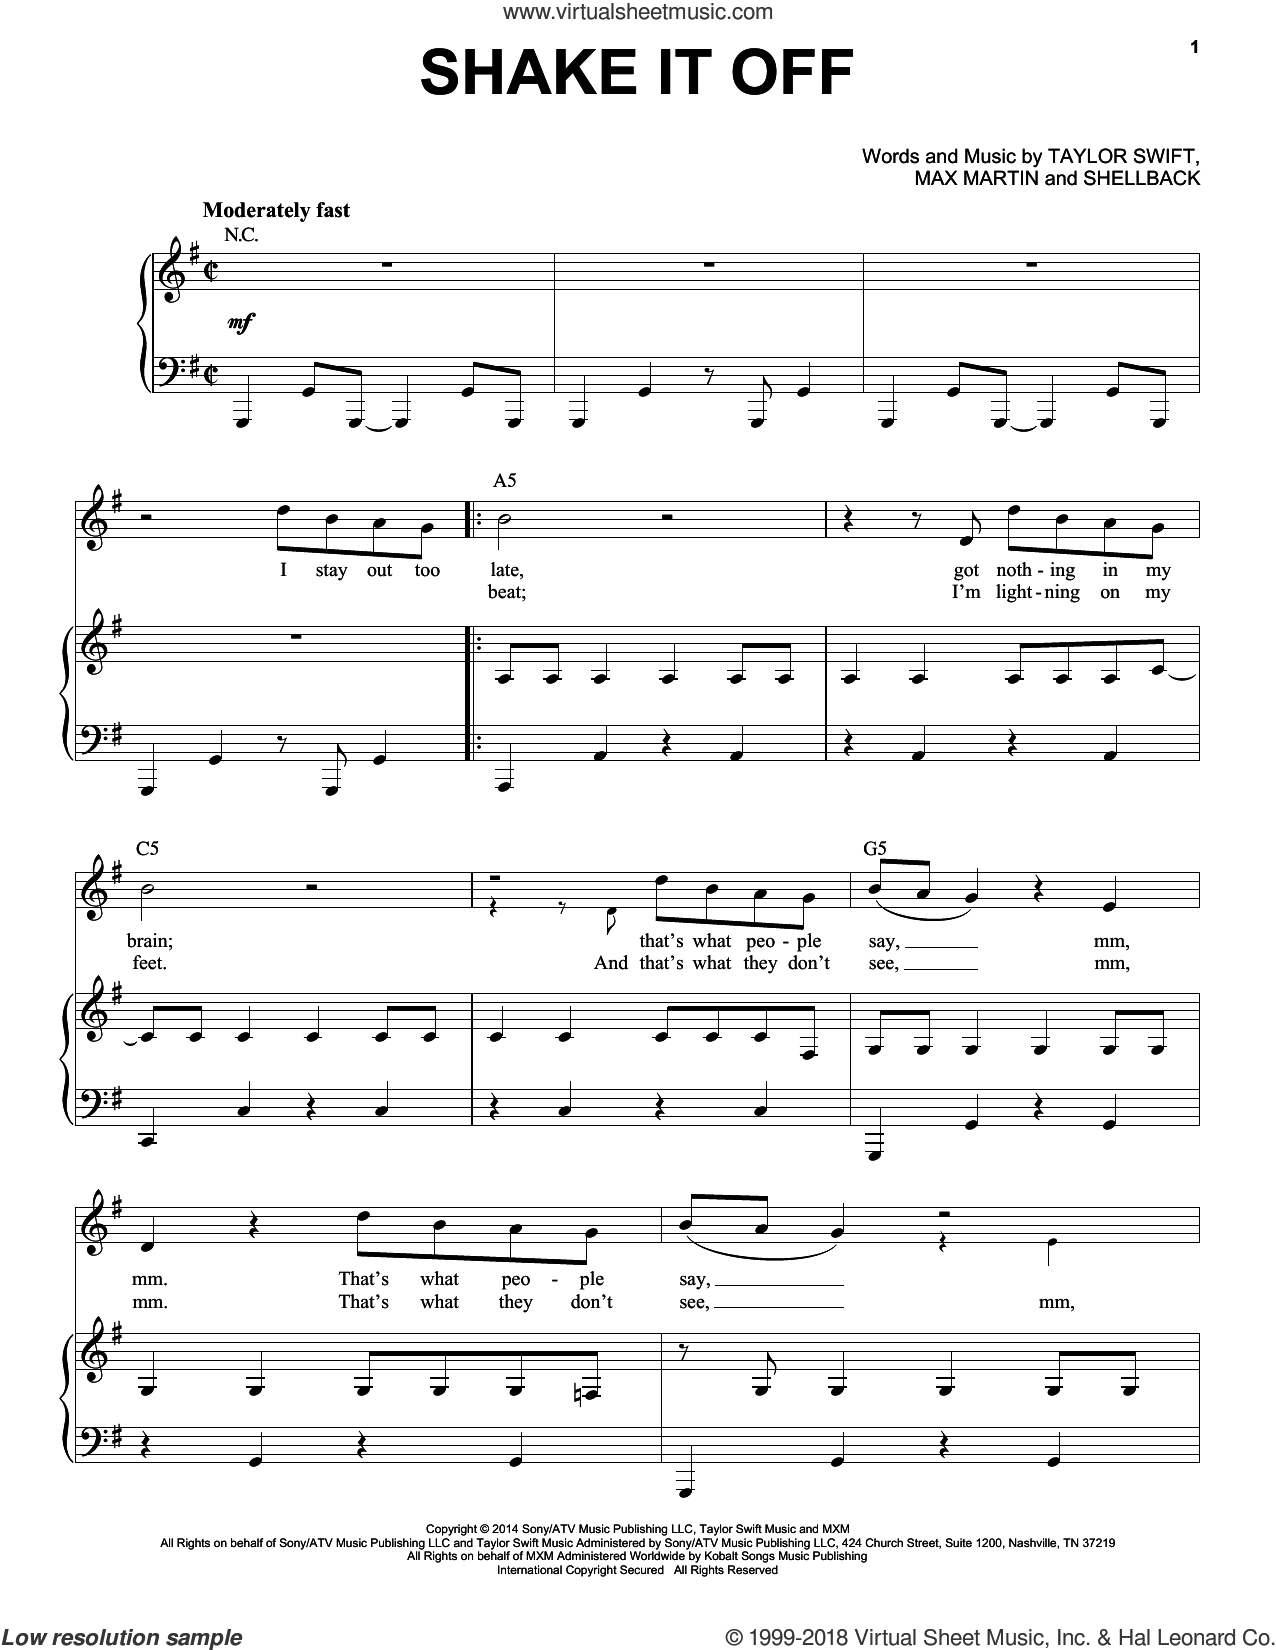 Shake It Off sheet music for voice and piano by Taylor Swift, Johan Schuster, Max Martin and Shellback, intermediate skill level